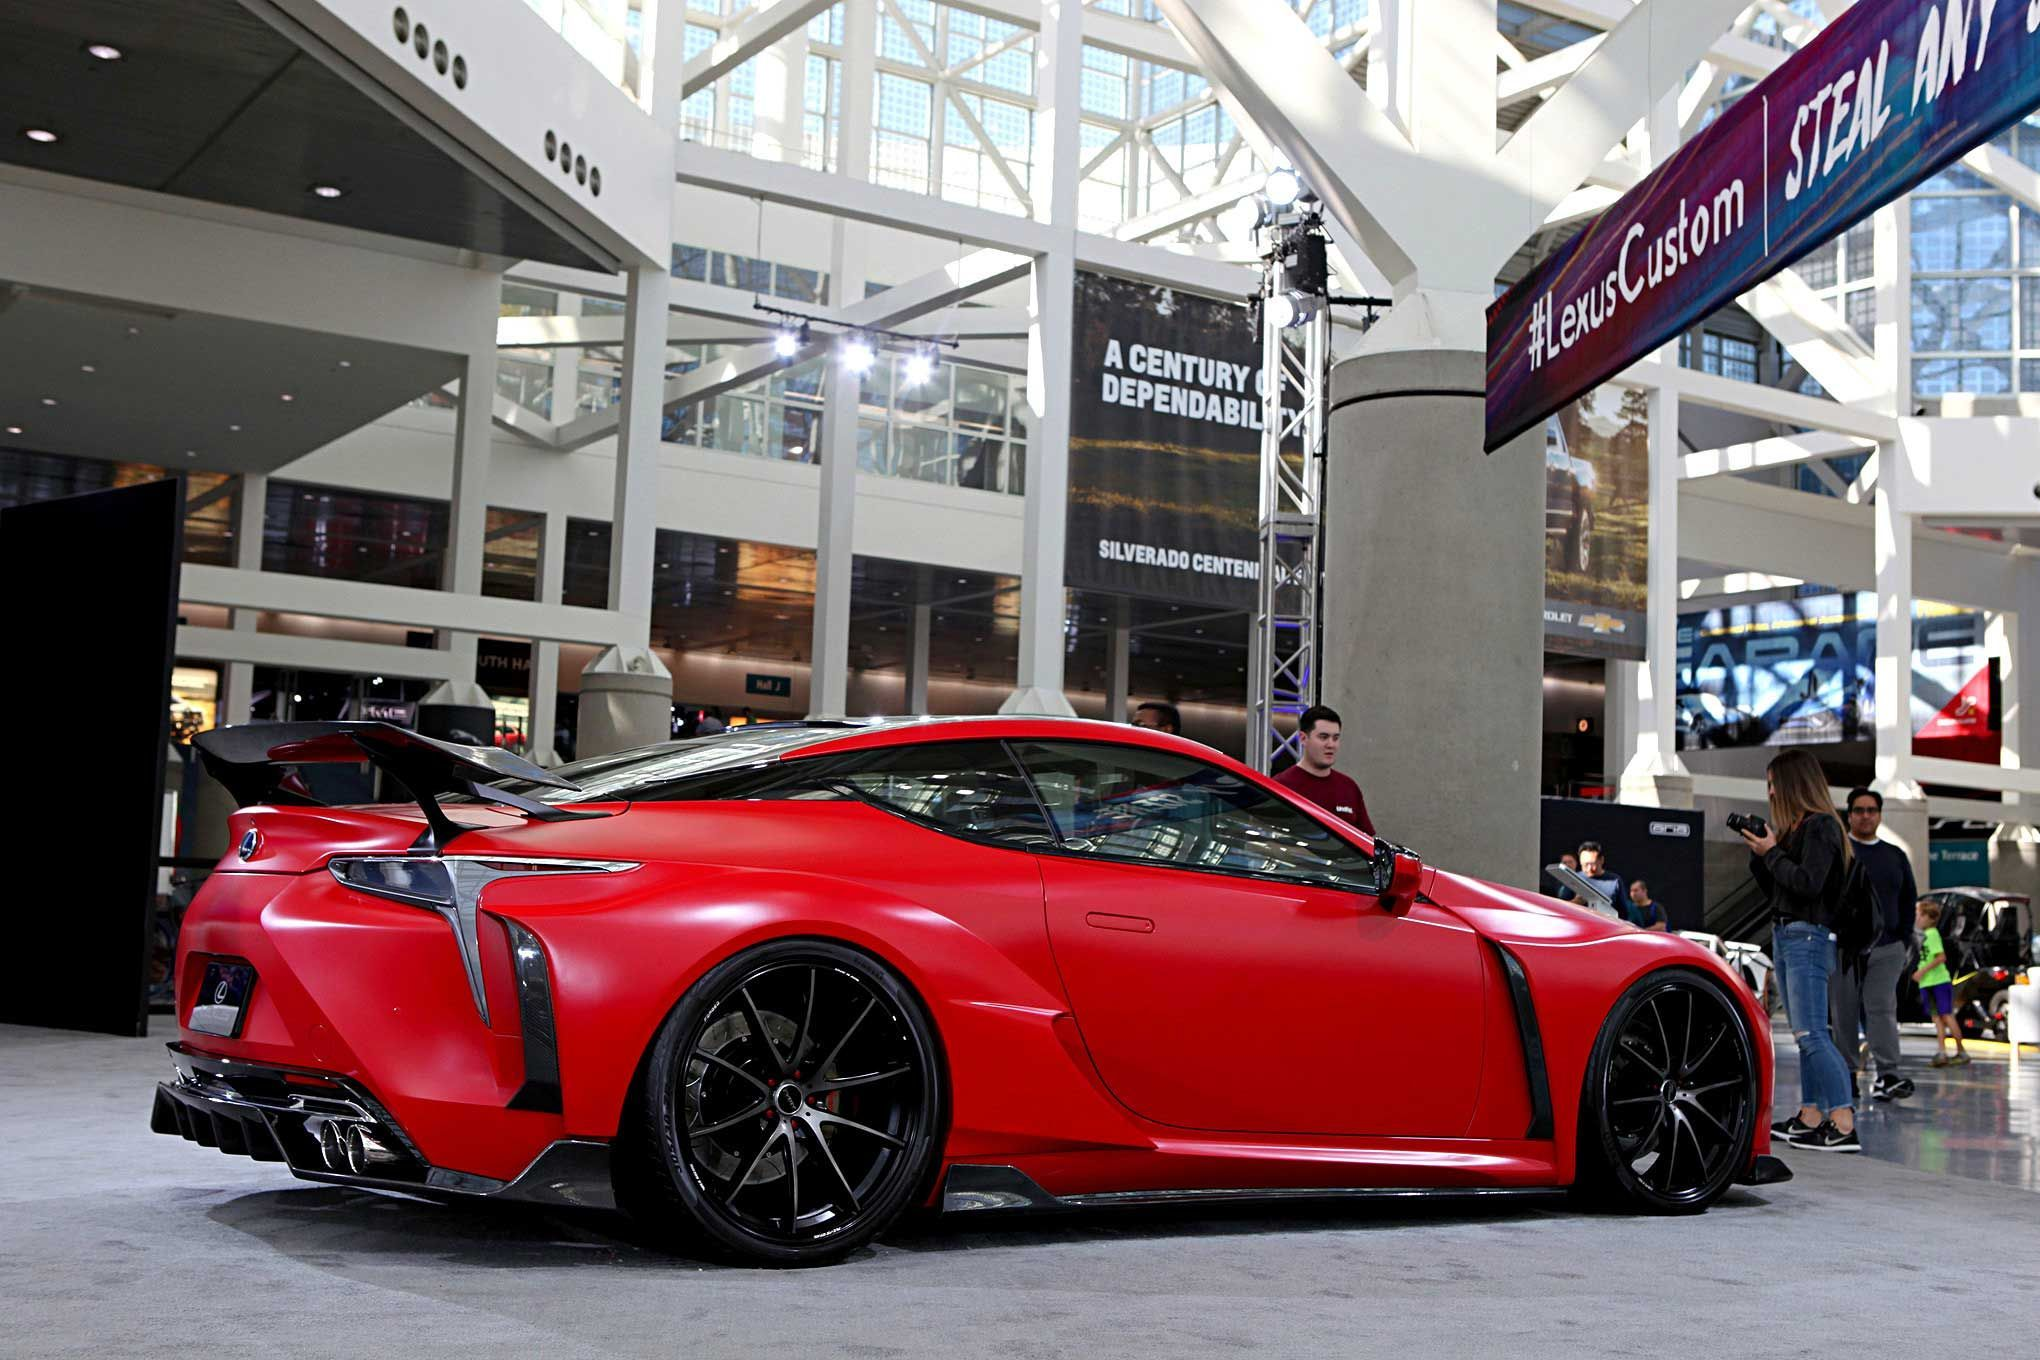 Lexus Lc500 Coupe Super Luxury Cars Lexus Coupe Sports Cars Luxury